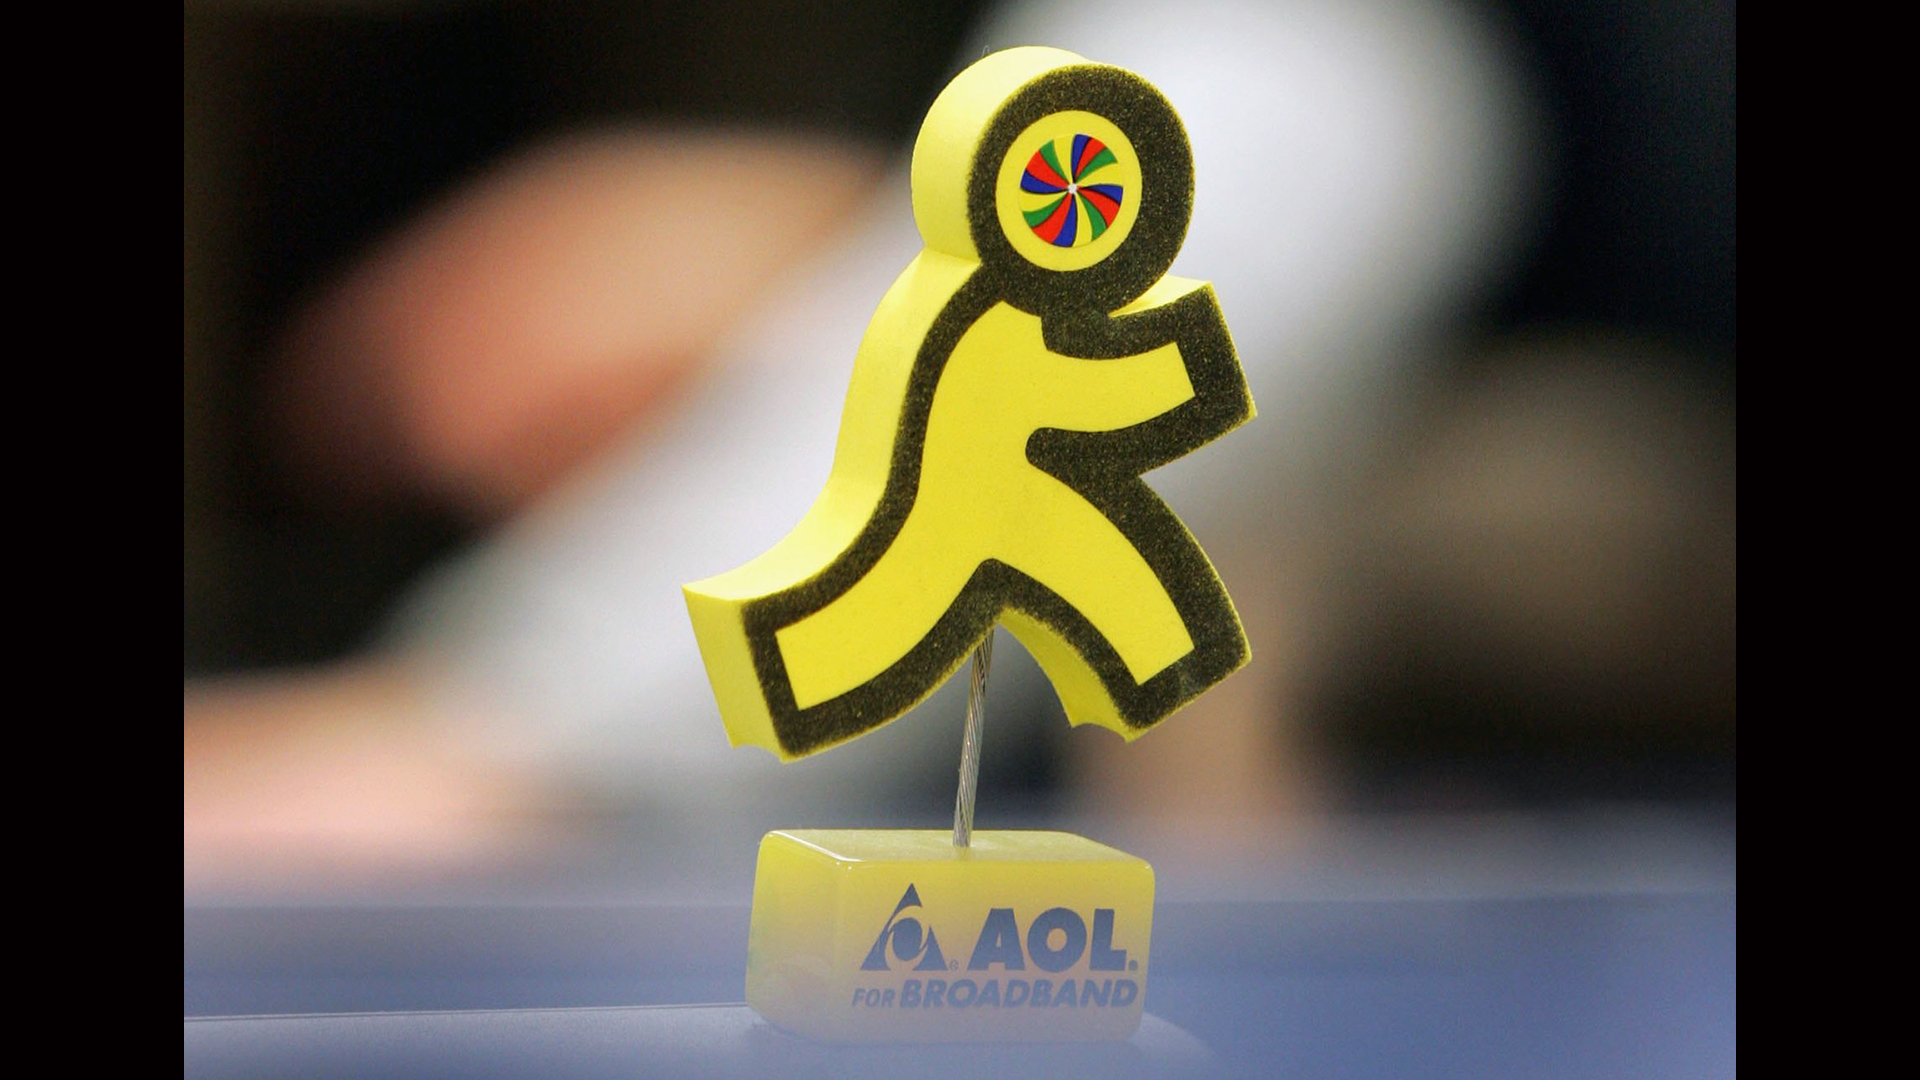 AOL icon from America Online AIM Instant Messenger-159532.jpg44980021